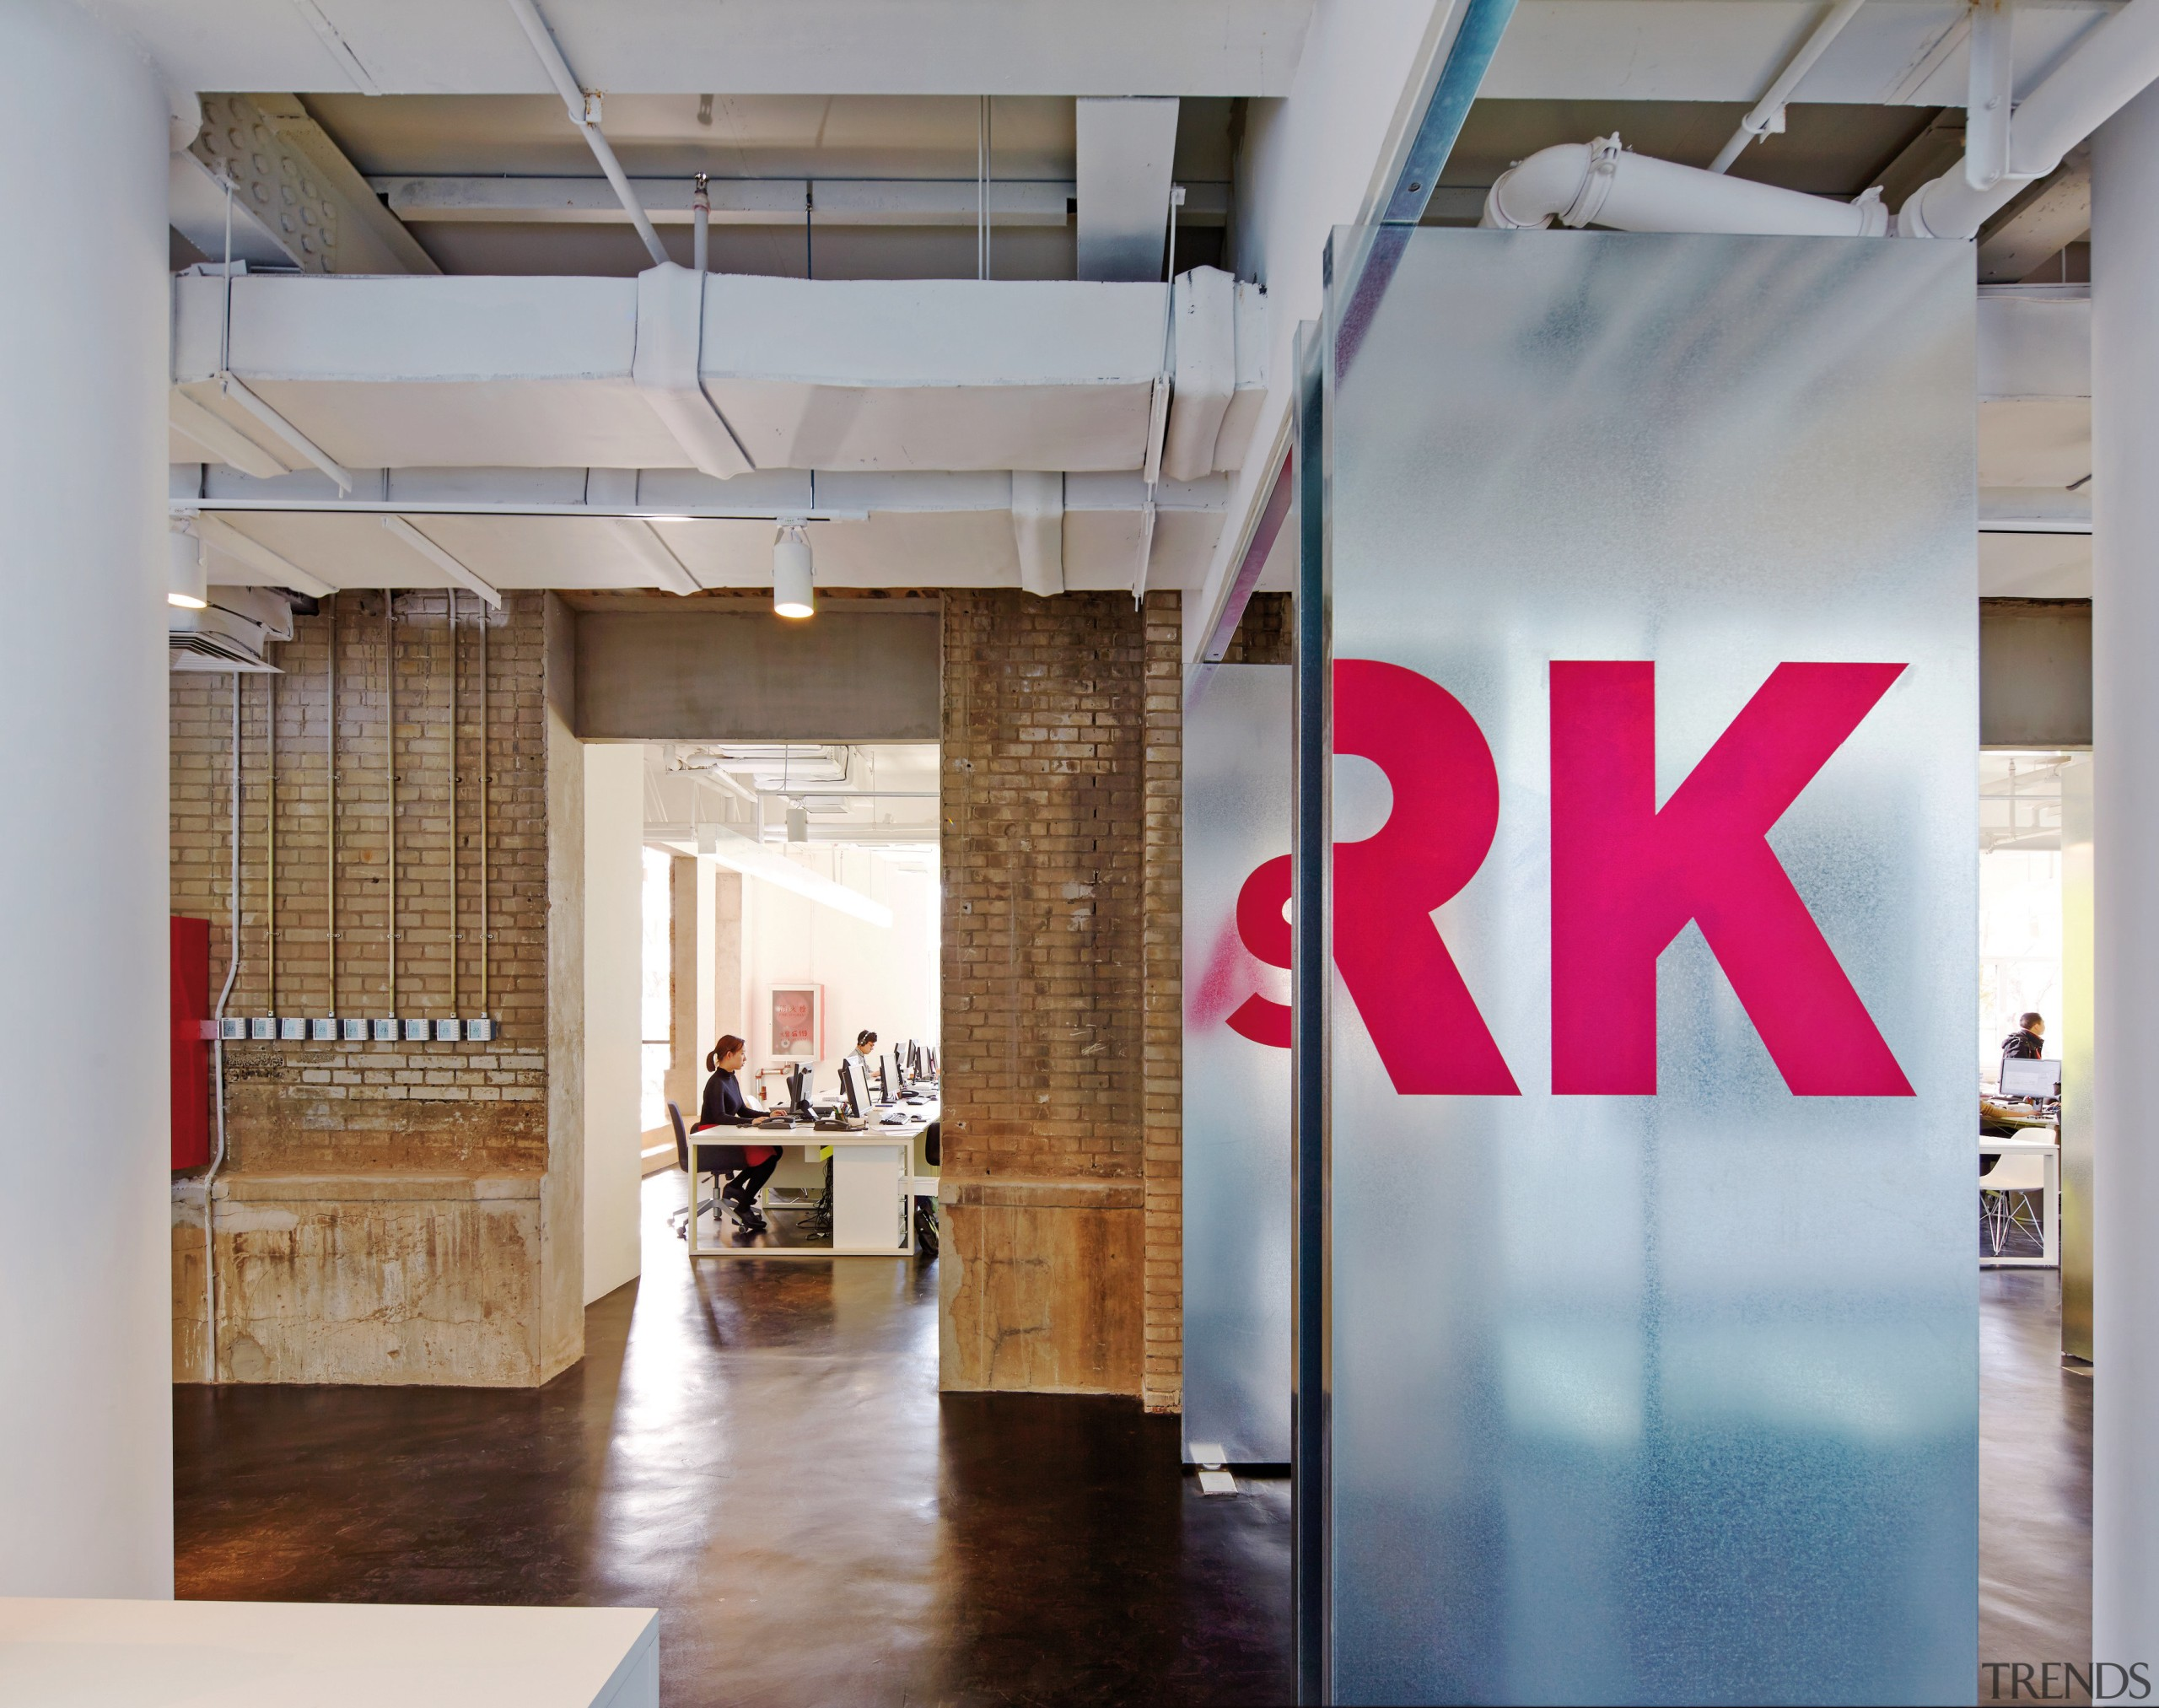 Exposed brick walls and service ducts provide an boutique, ceiling, exhibition, floor, interior design, loft, gray